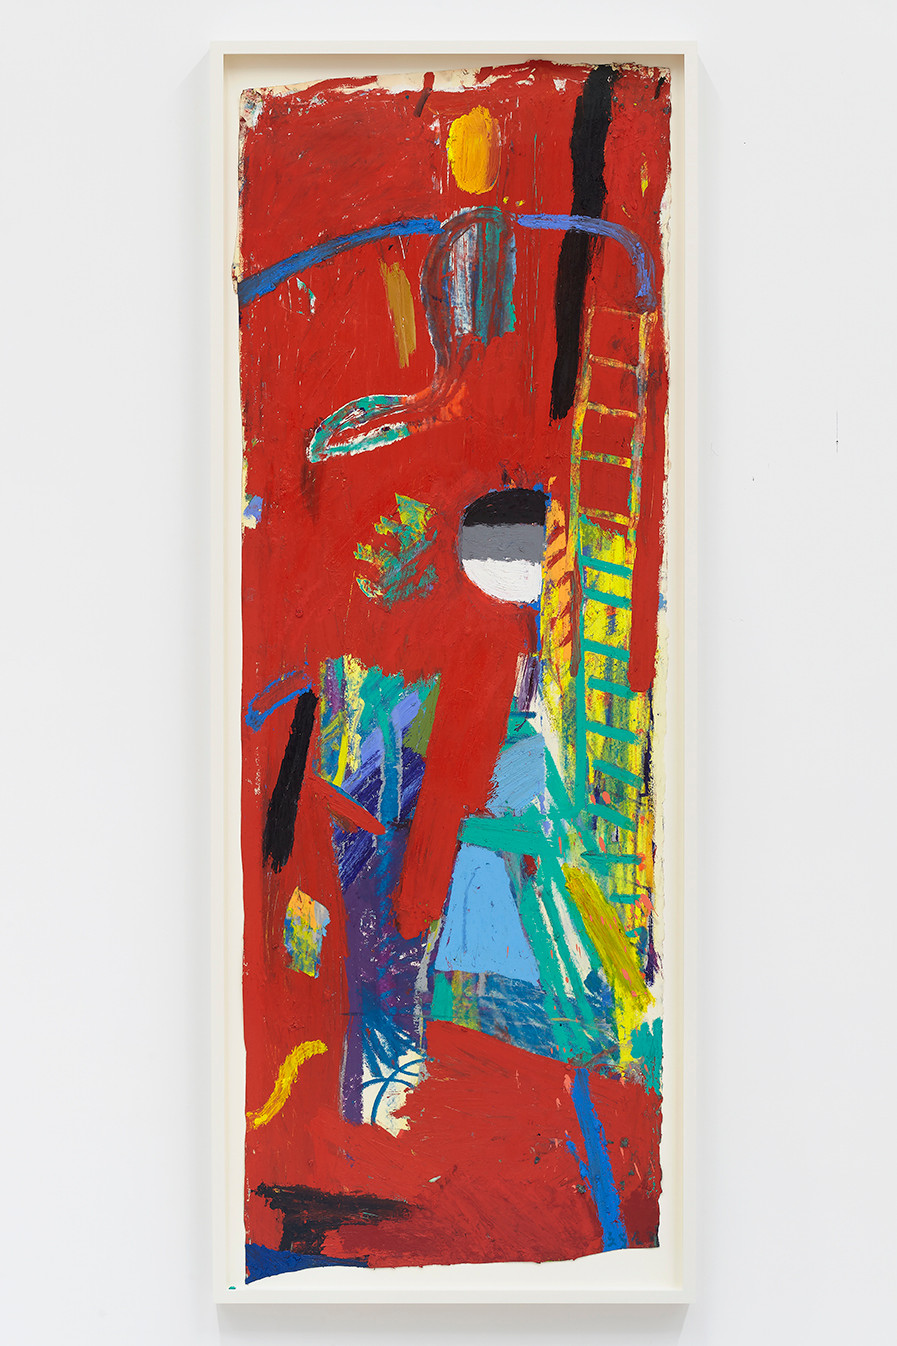 Spencer Sweeney Trapeze, 2020Oil pastel, oil stick and spray paint on paper67 x 24 1/4 inches70.5 x 27 inches (framed)